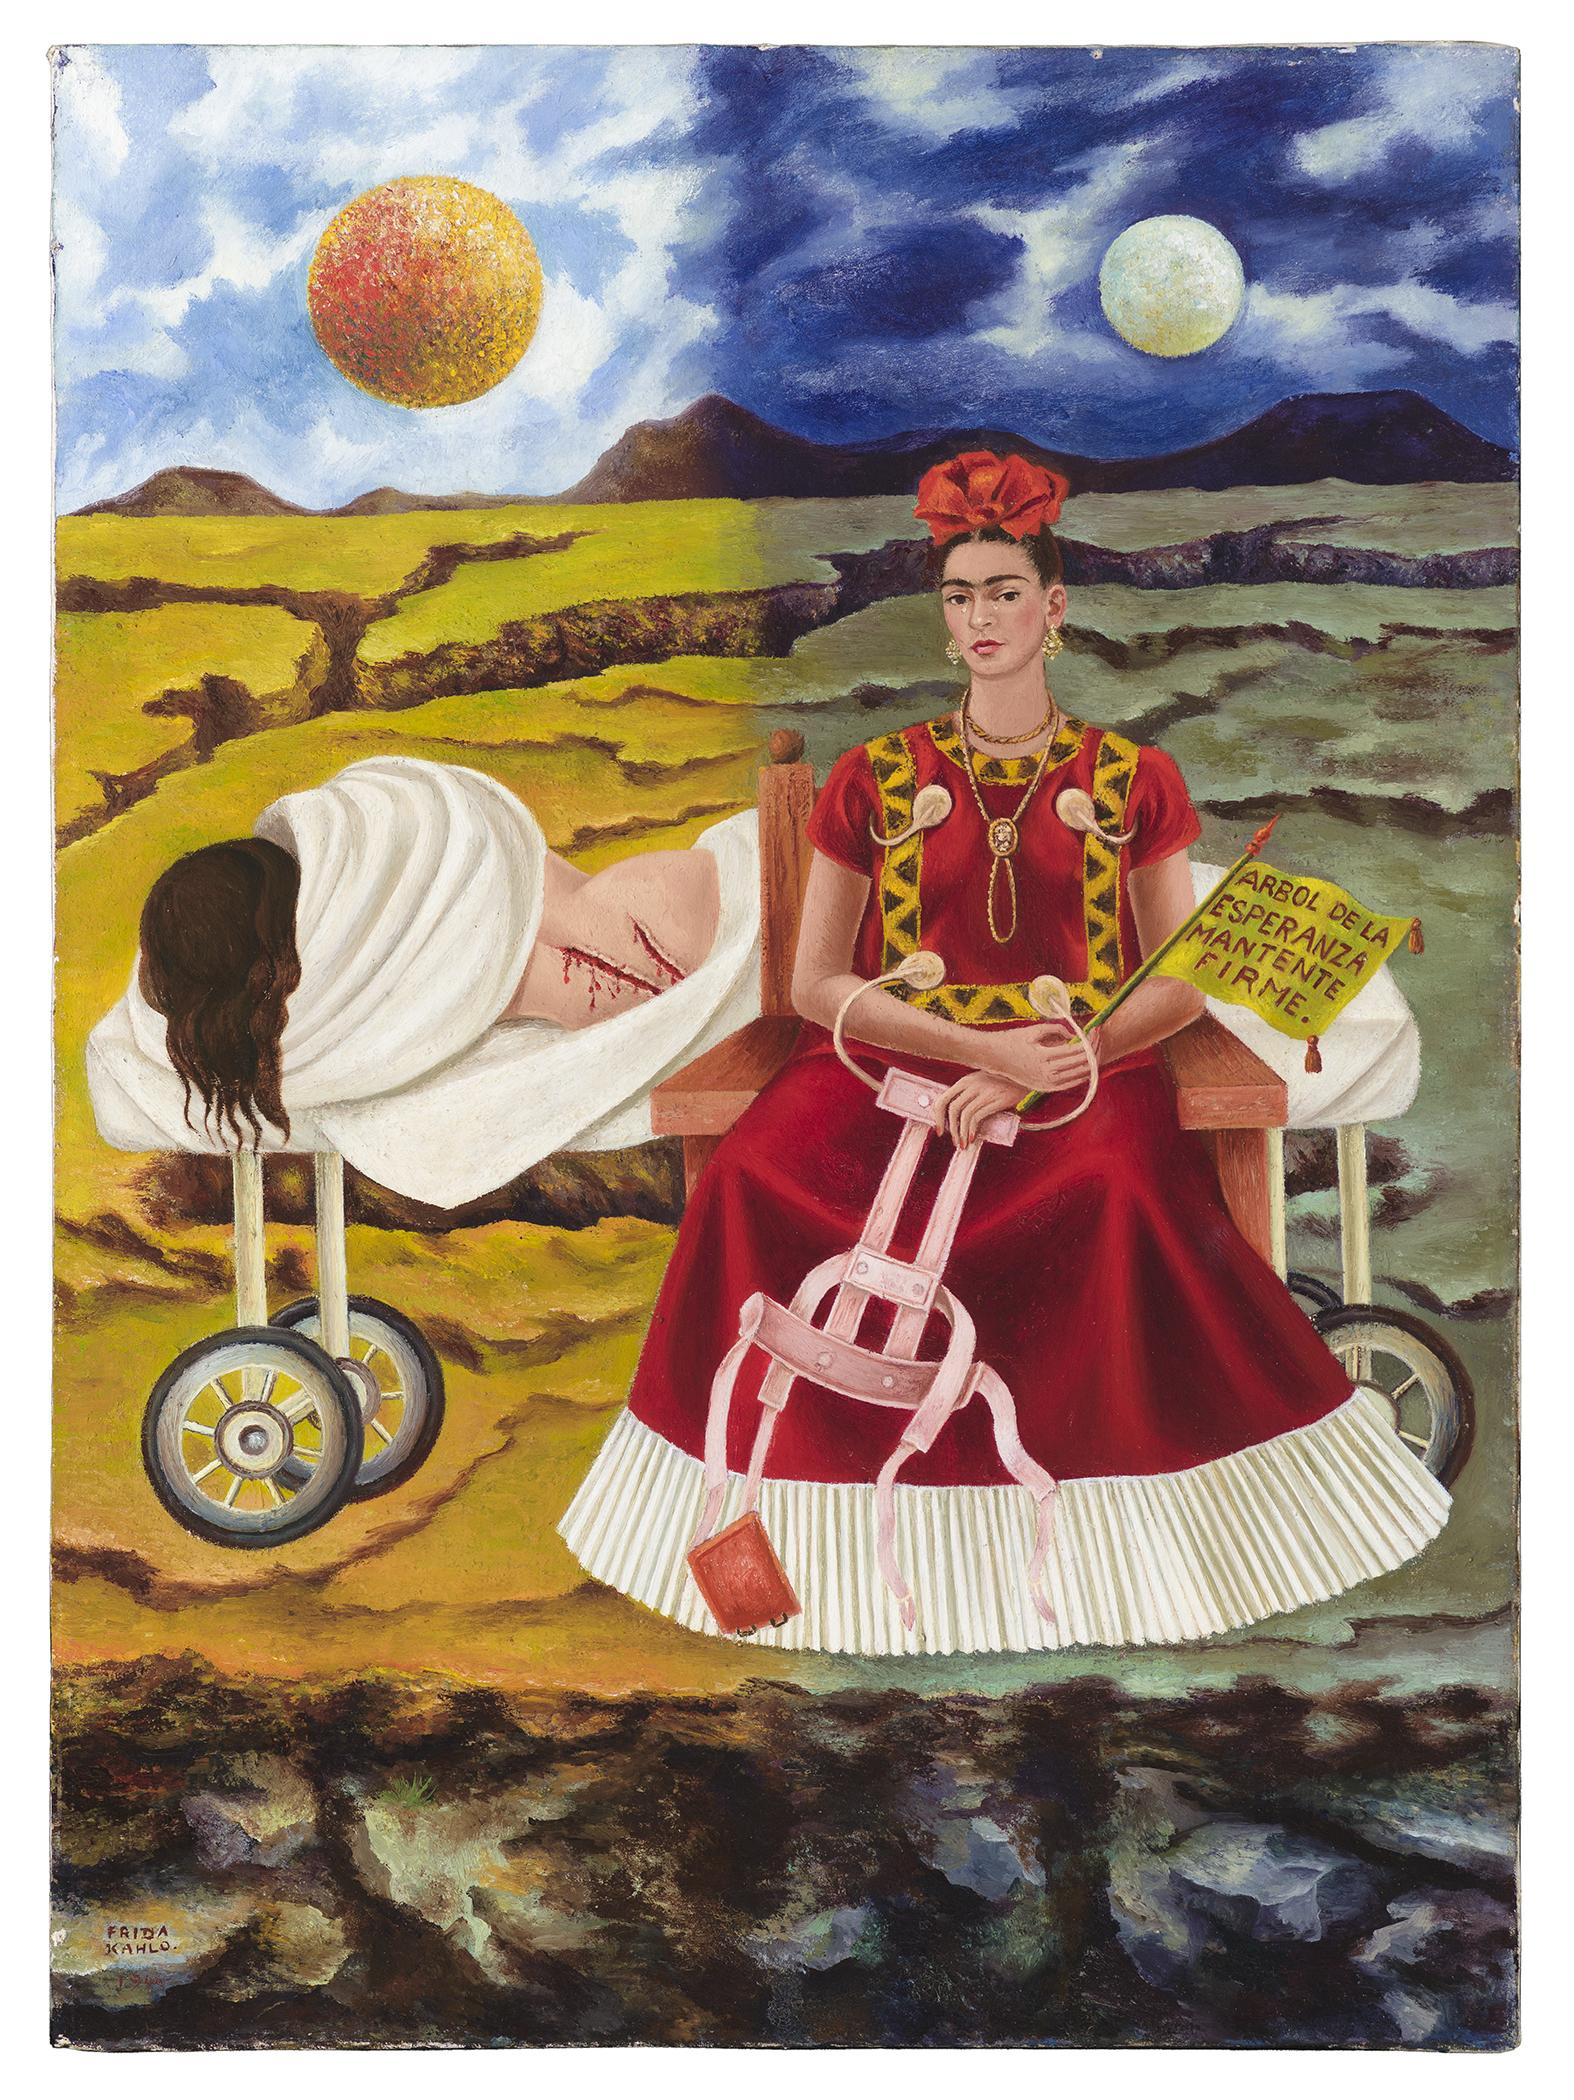 Vivid painting of a desert landscape, which is divided in half by day and night, and two women in the foreground—one seated wearing an elaborate red dress, the other lying on a cart nude, wounded, and wrapped in a white sheet